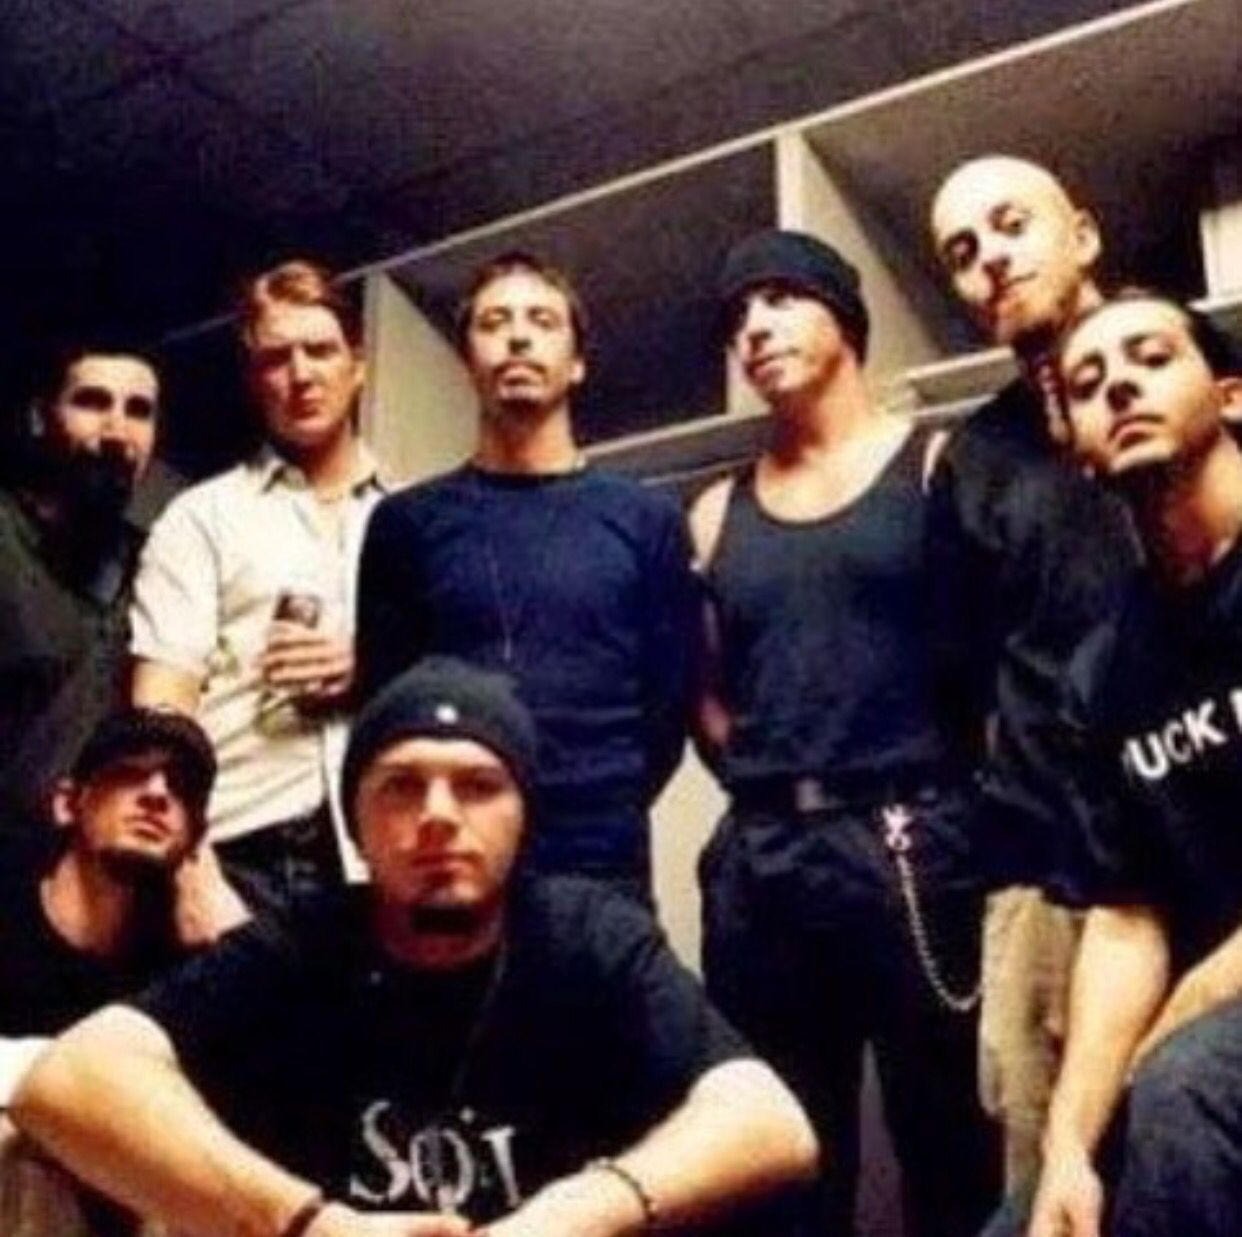 System Of A Down With Dave Grohl Of Foo Fighters Till Lindemann